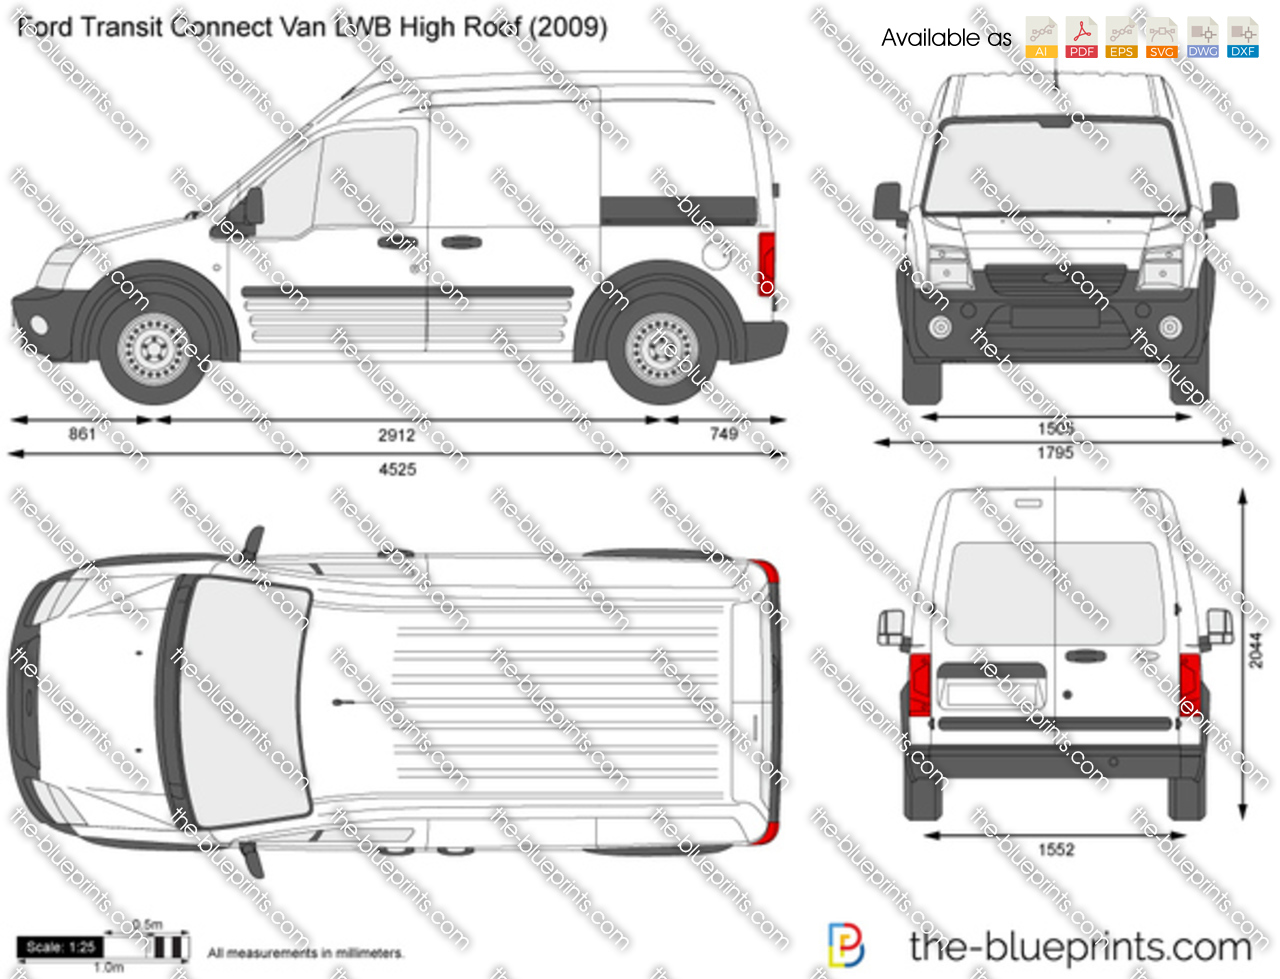 ford transit connect van lwb high roof vector drawing